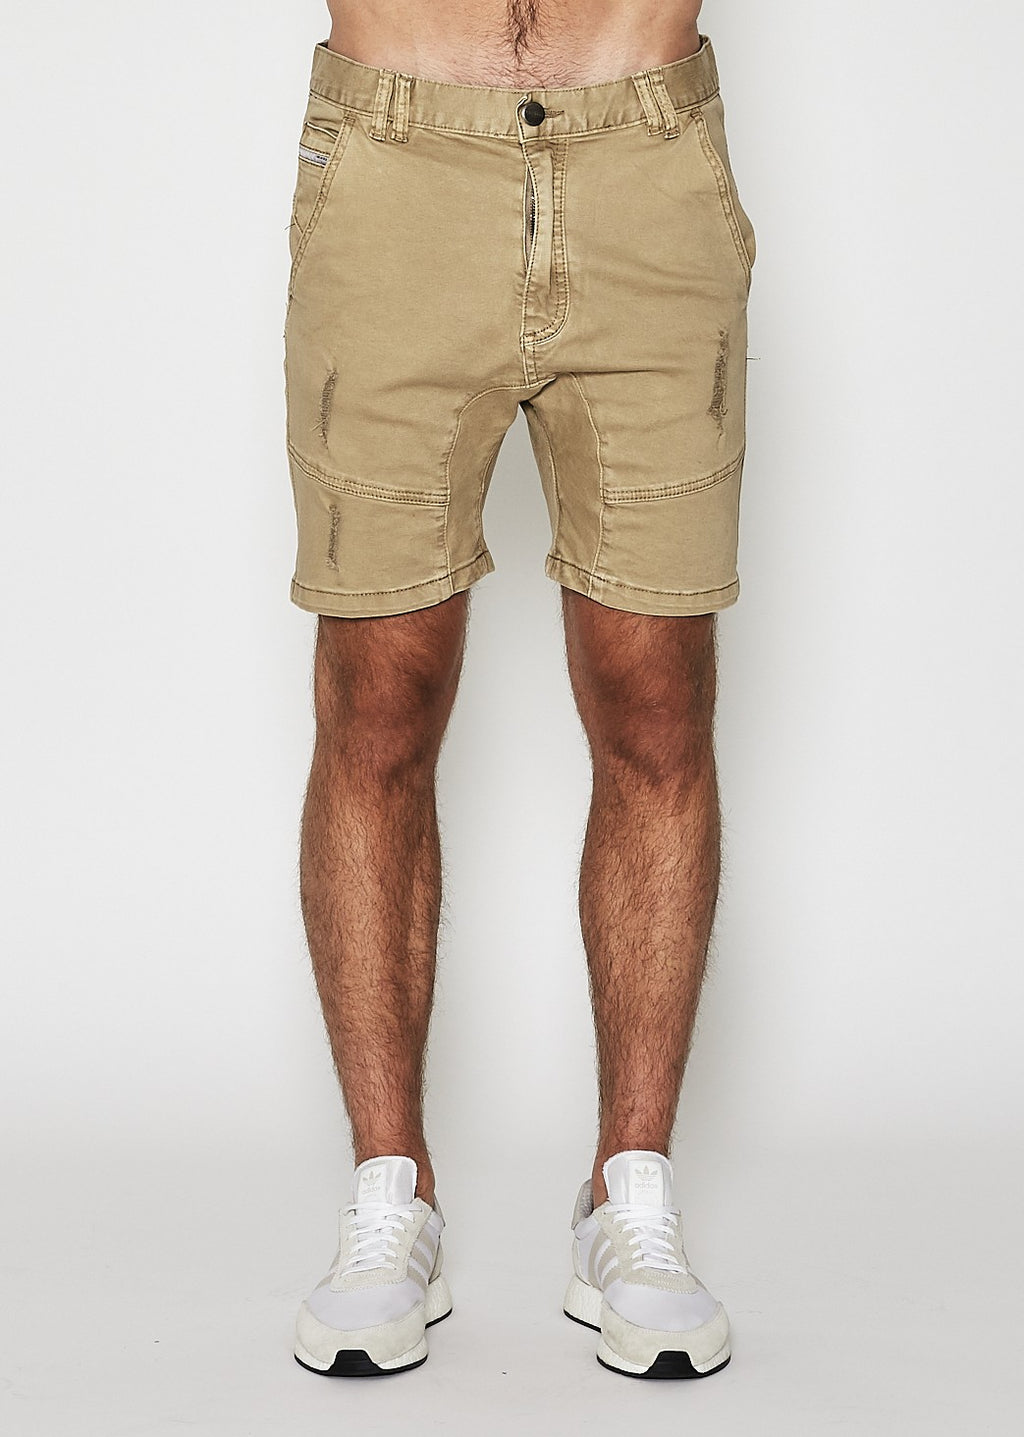 Flight Denim Short Oxford Tan